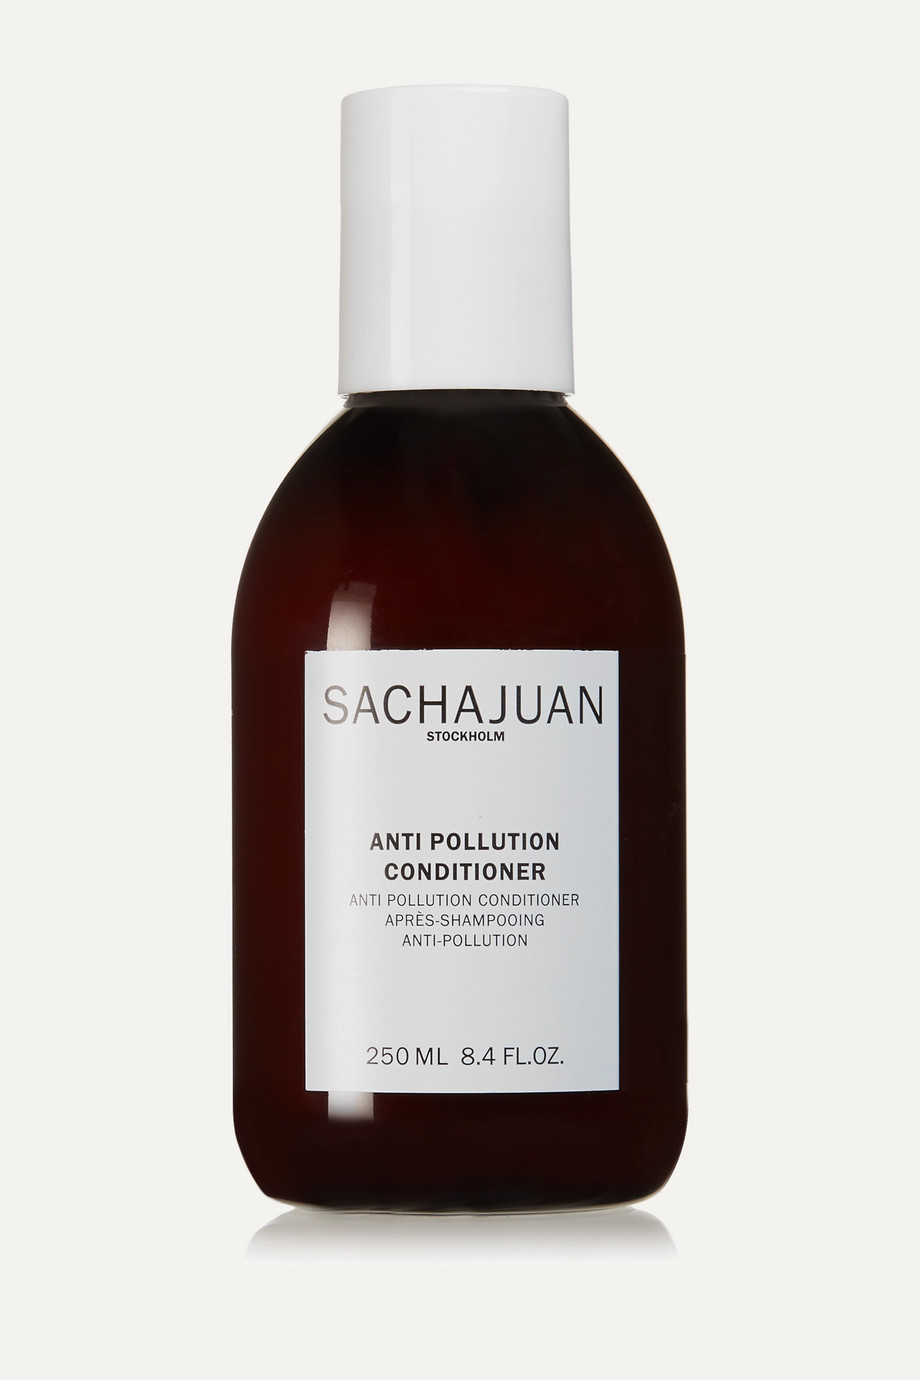 SACHAJUAN Anti Pollution Conditioner, 250ml